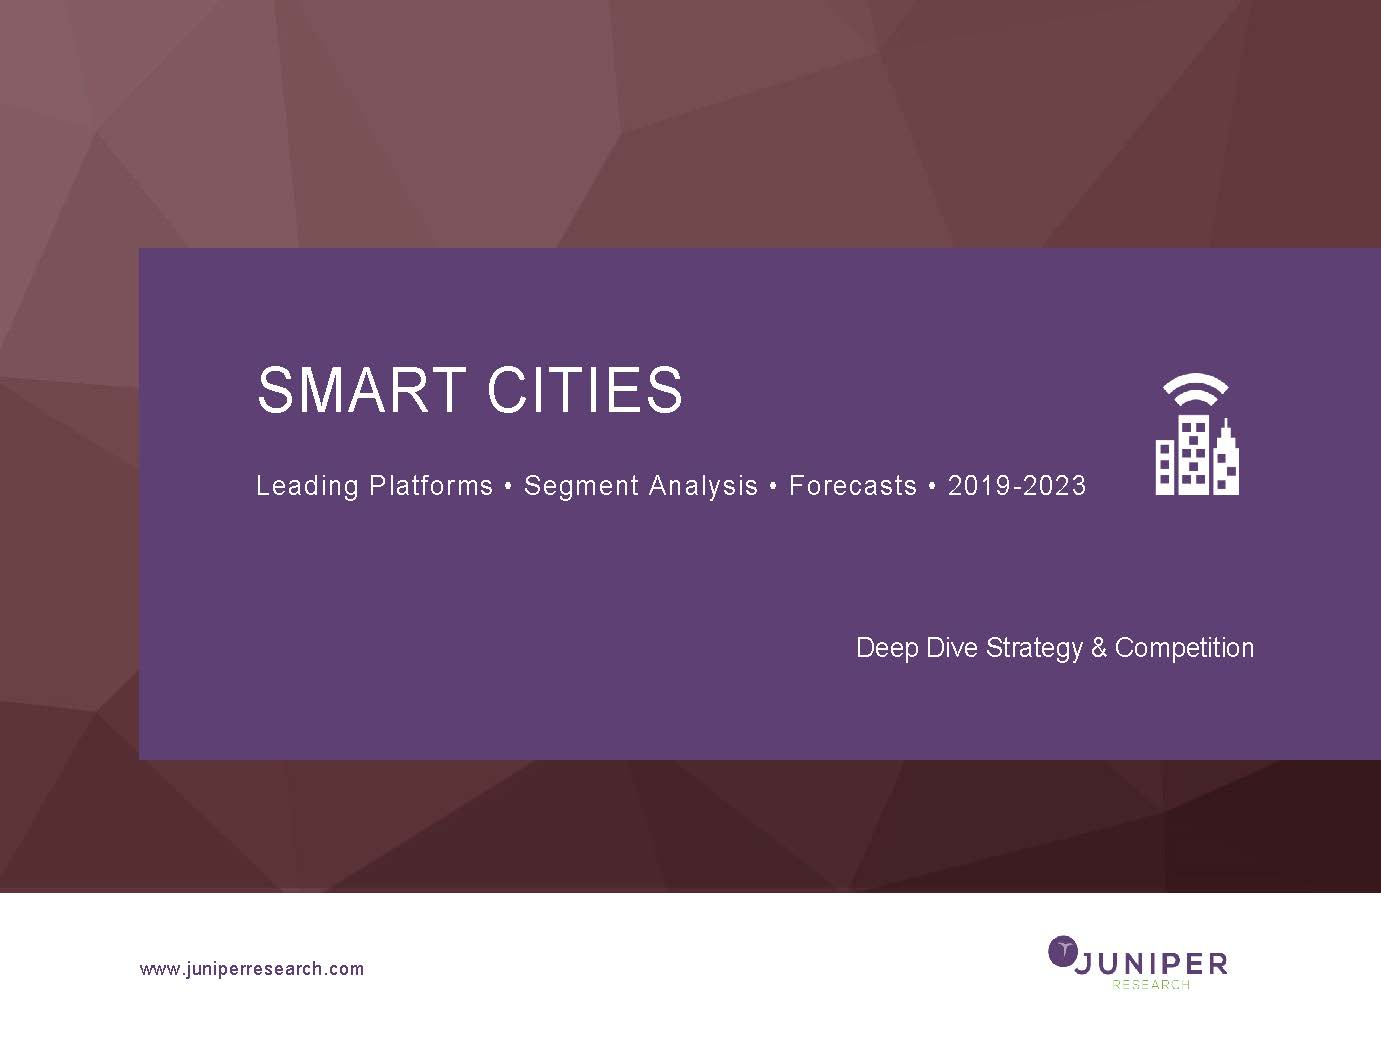 Smart Cities: Deep Dive Strategy & Competition